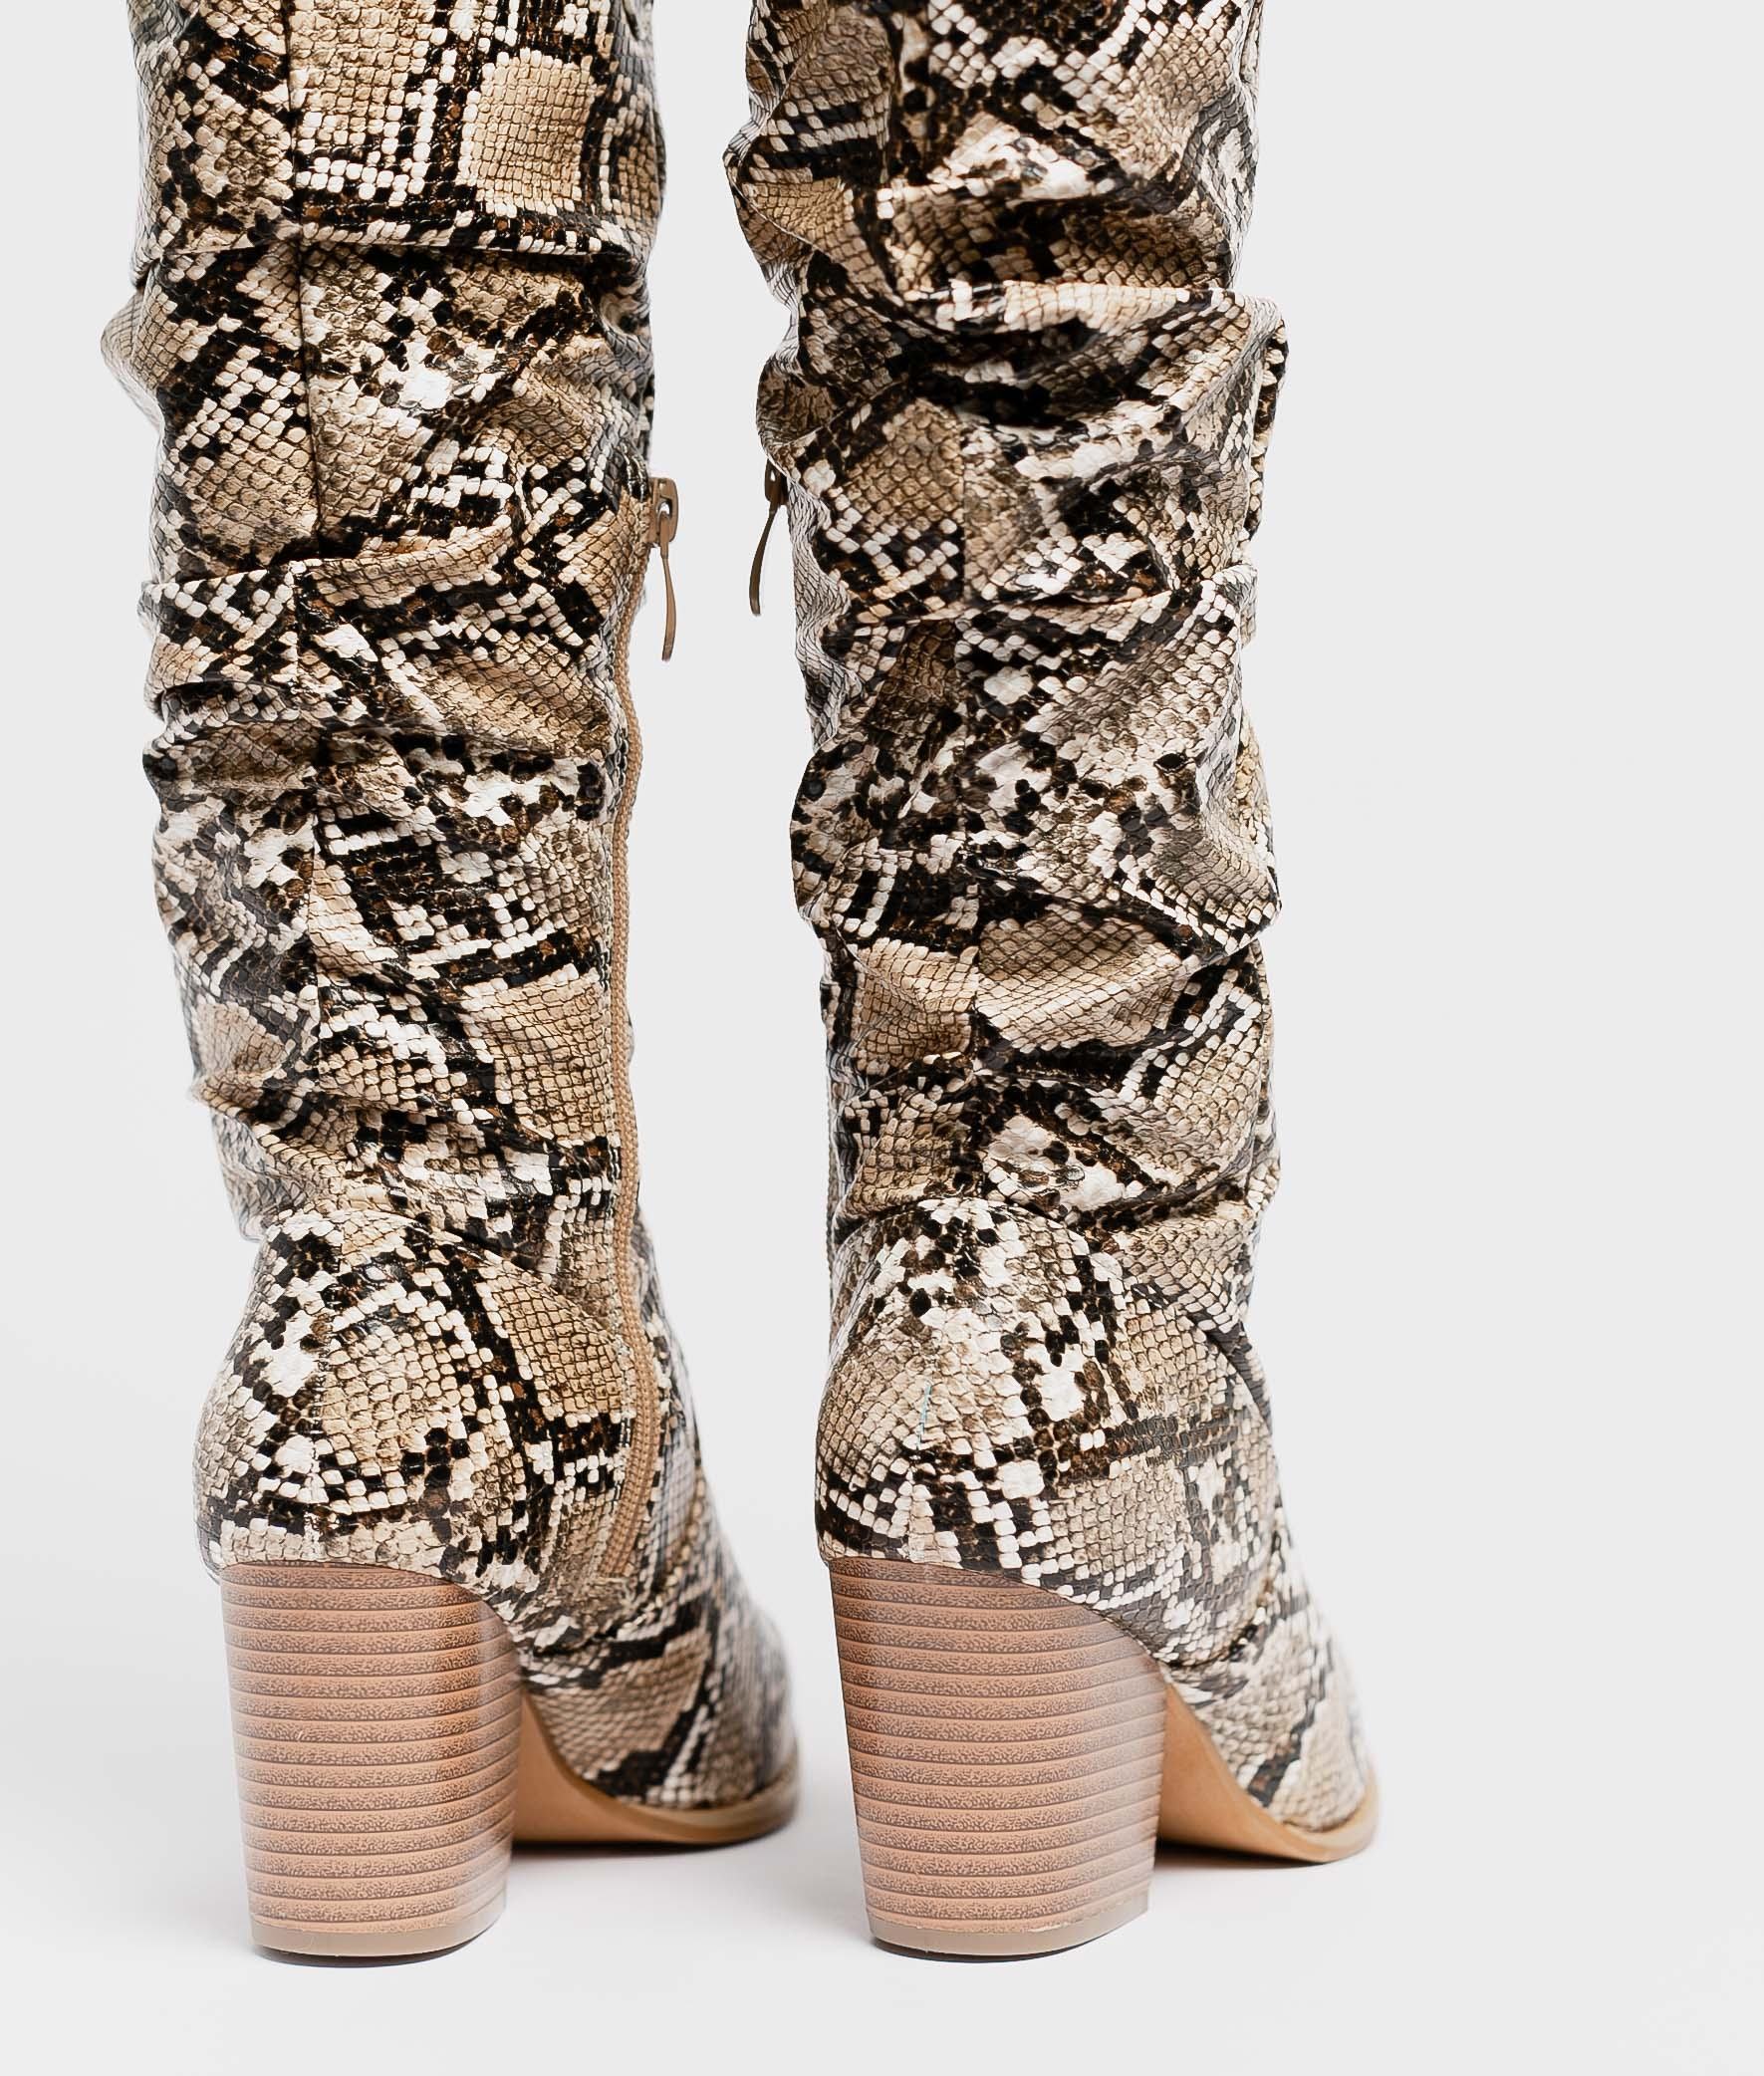 Knee-Lenght Boot Baria - Snake